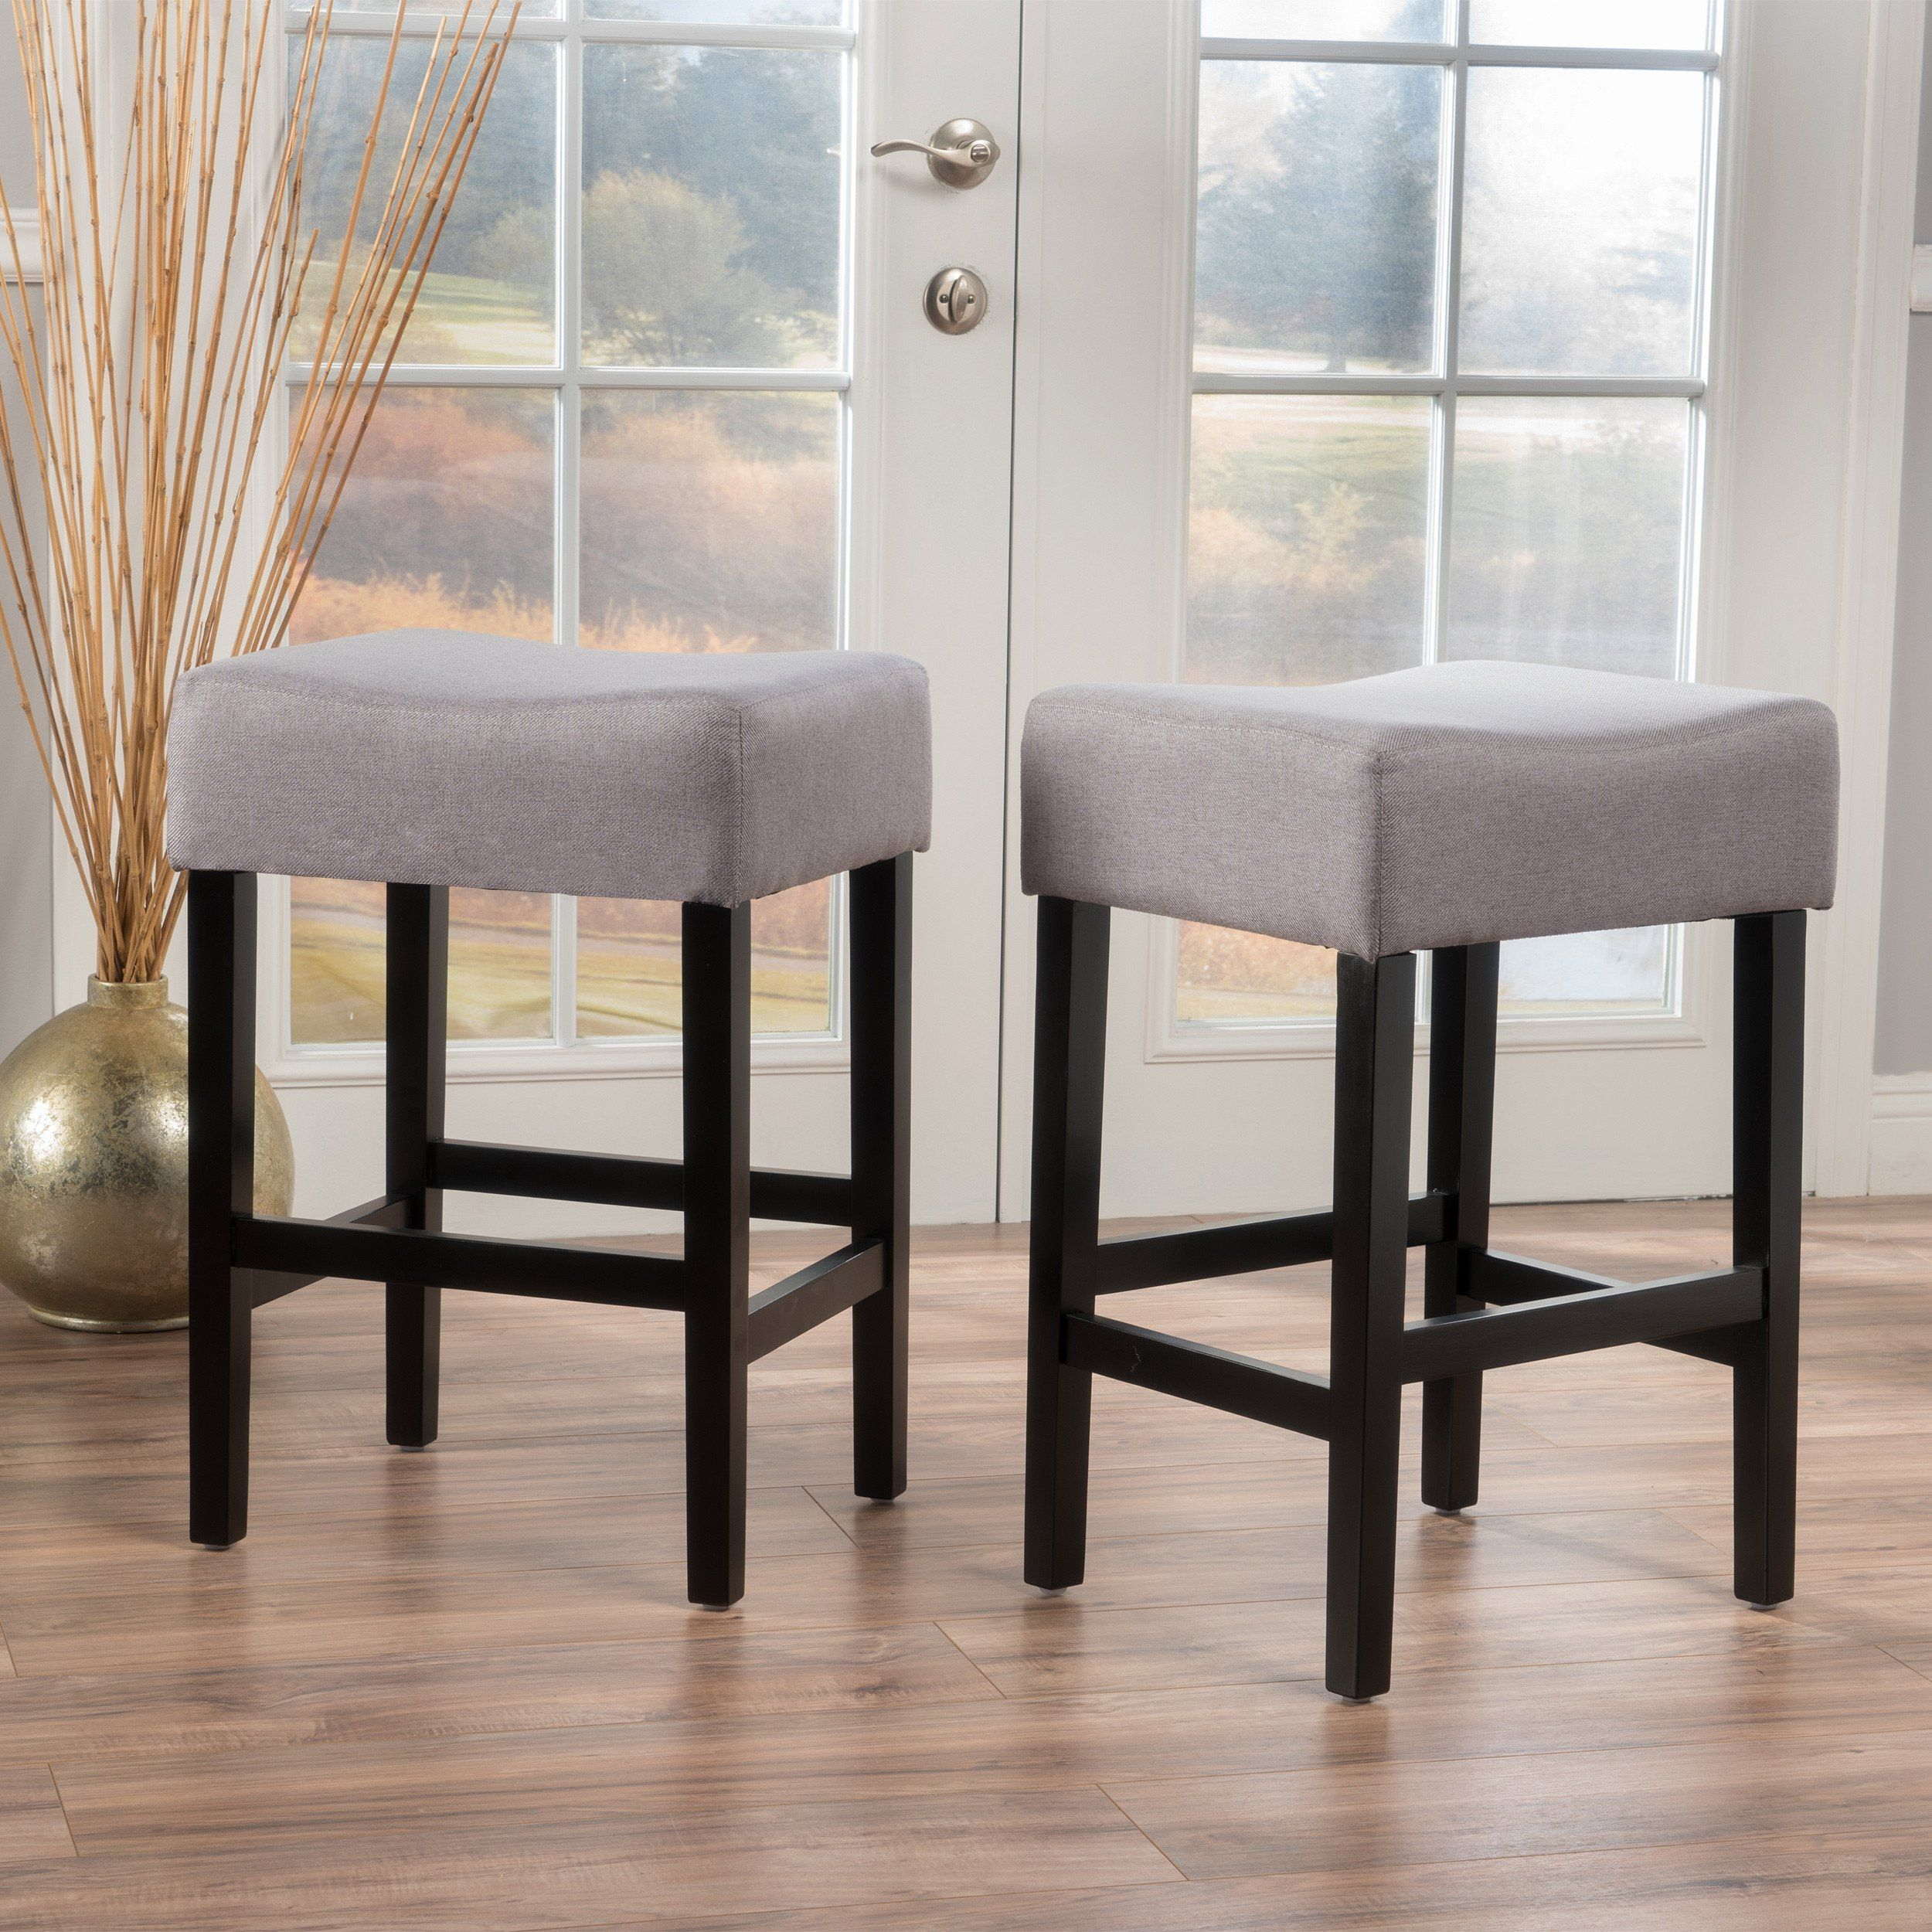 commercial kitchen utah lowes clearance impressive counter ideas city at of walmart stools outdoor salt home menards katy or salem texasbar sale lake full images in size awesome stool bar for